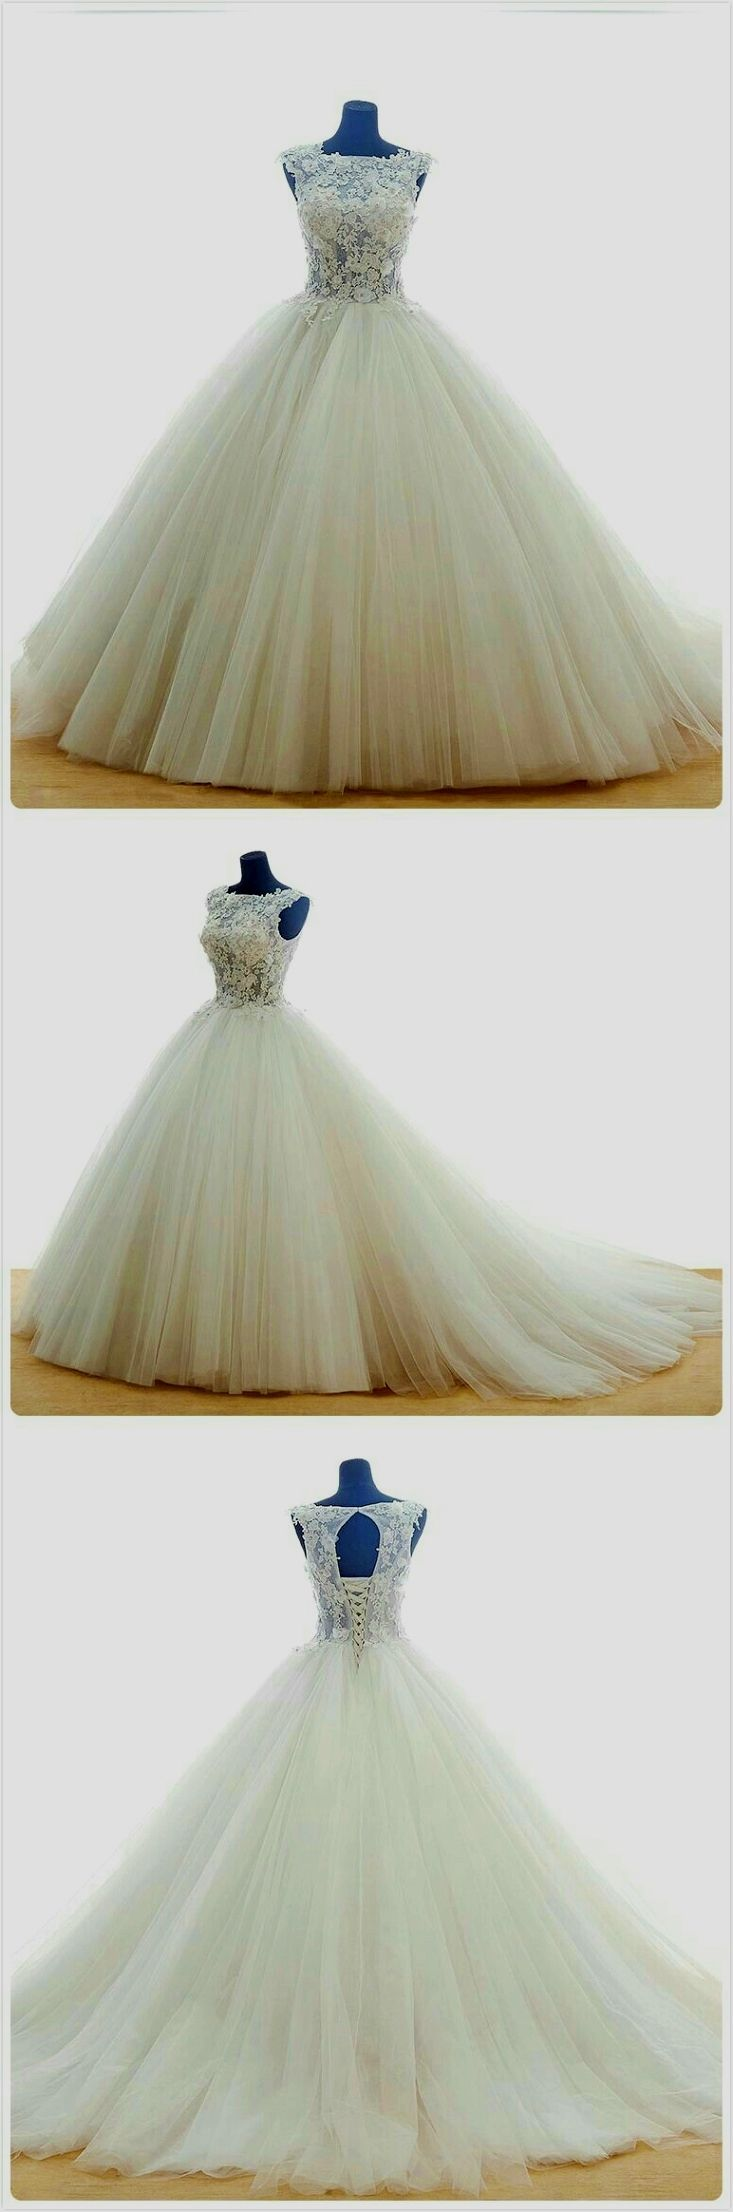 Affordable wedding dress designers list  Quinceanera dress shopping may be one of the best and worst areas of